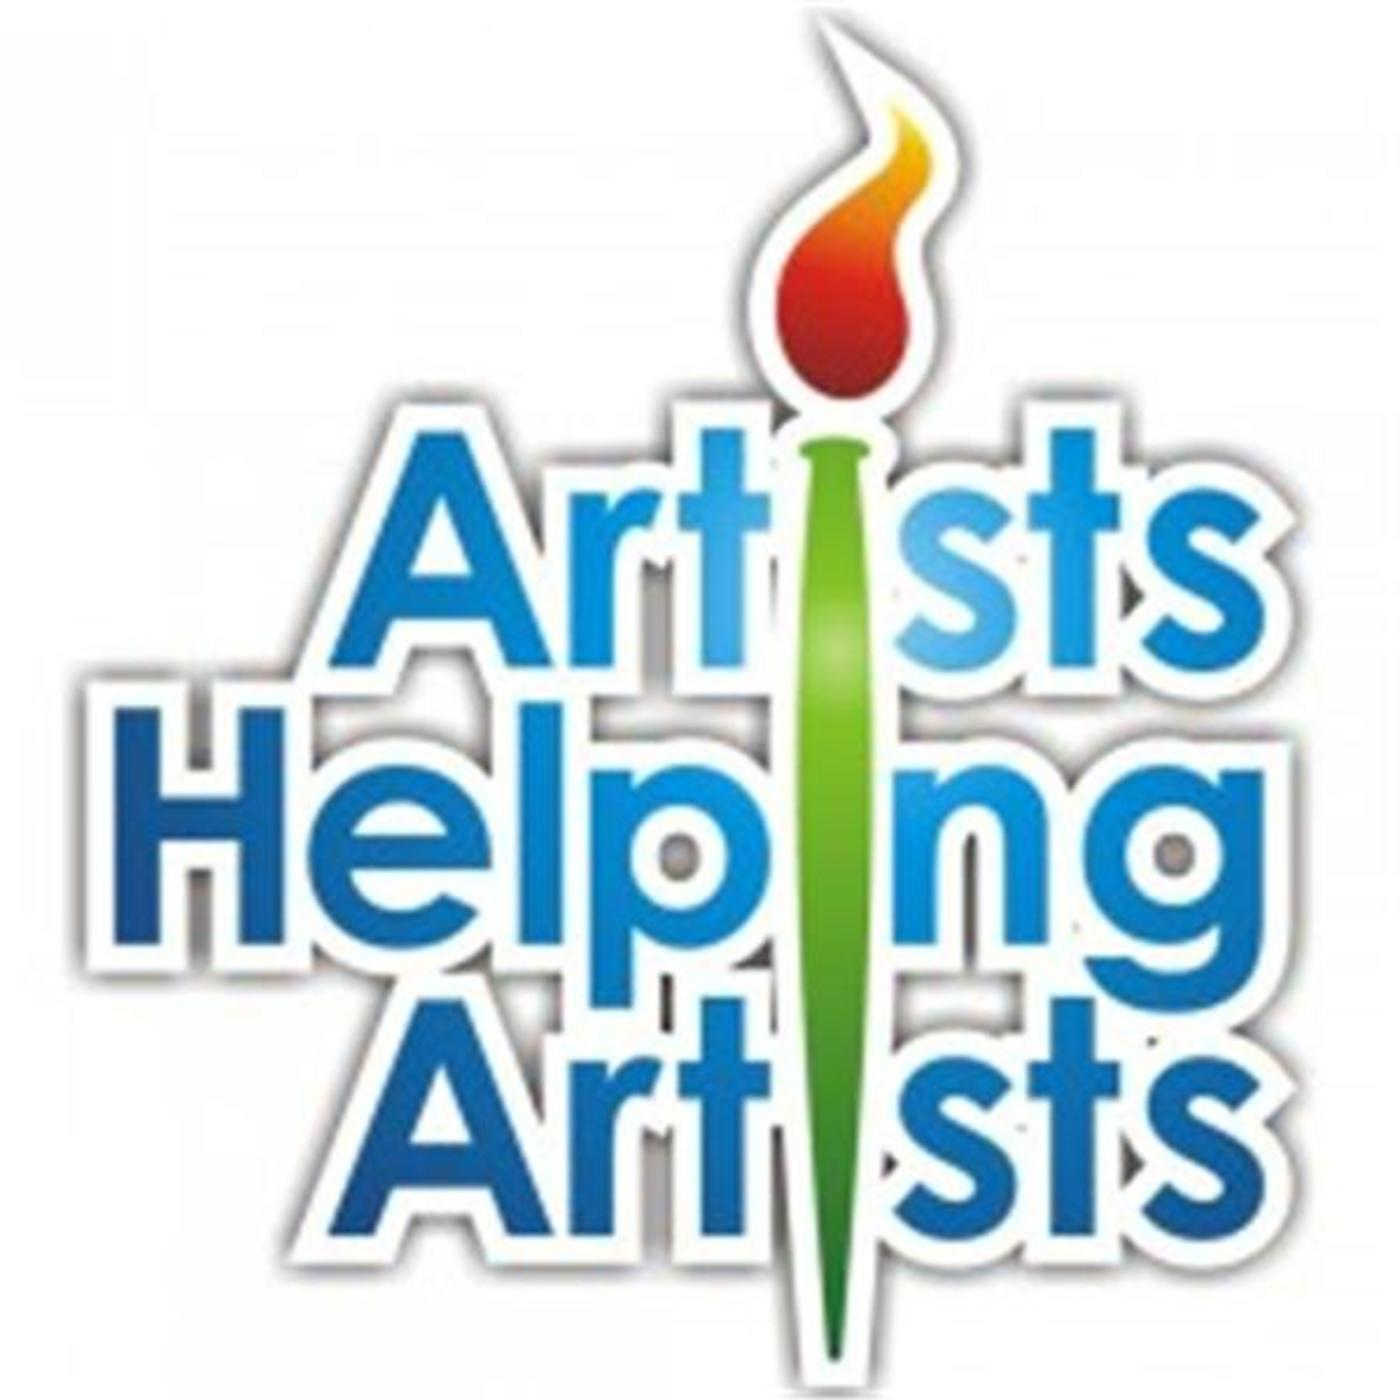 Artists Helping Artists: Selling Your Art On-Line with Leslie Saeta